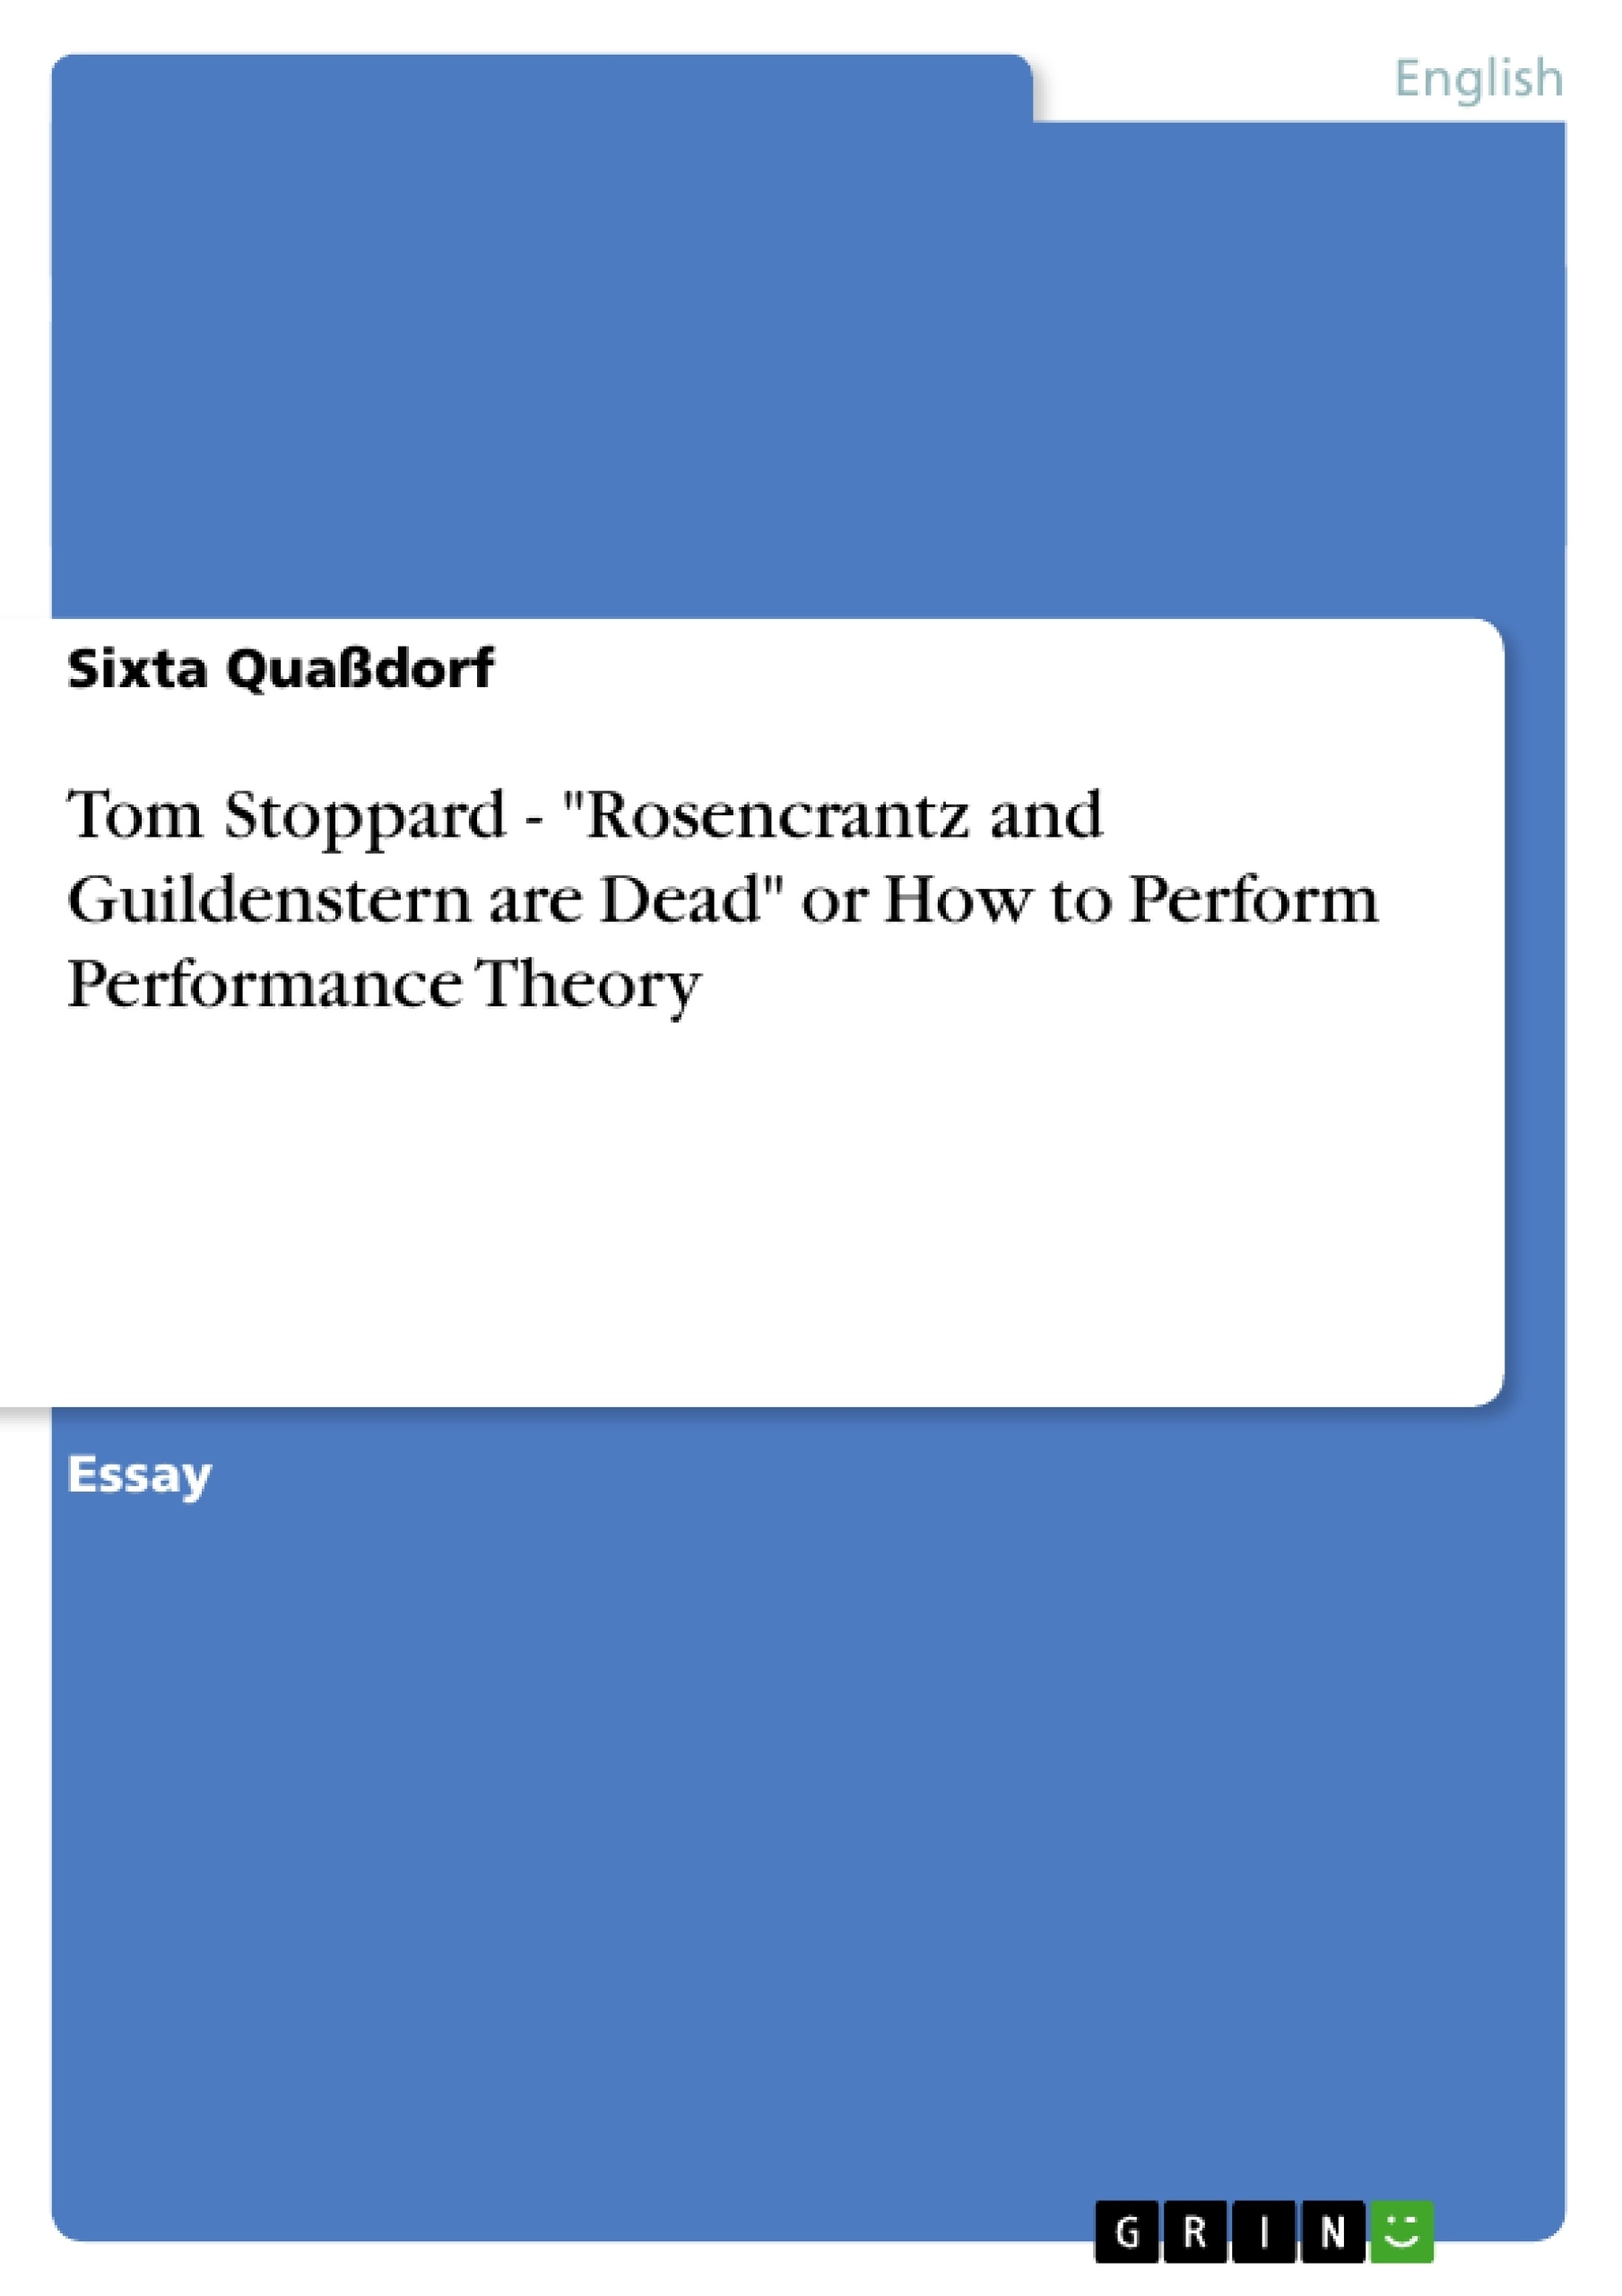 """Title: Tom Stoppard - """"Rosencrantz and Guildenstern are Dead"""" or How to Perform Performance Theory"""